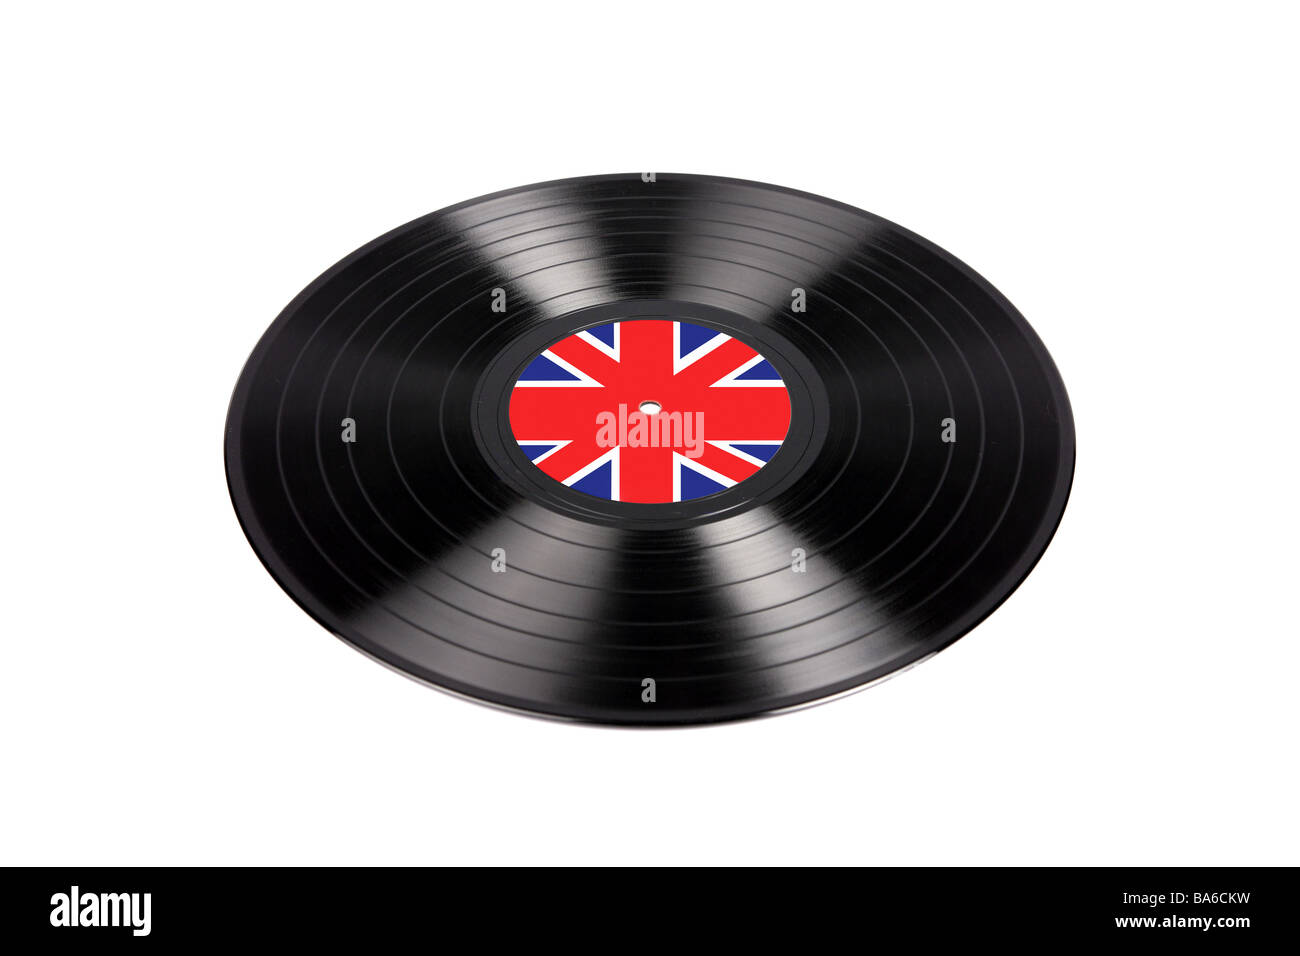 1960s LP vinly recording with a british Union Jack Label usually associated with the Mods or later Punk Rock music - Stock Image